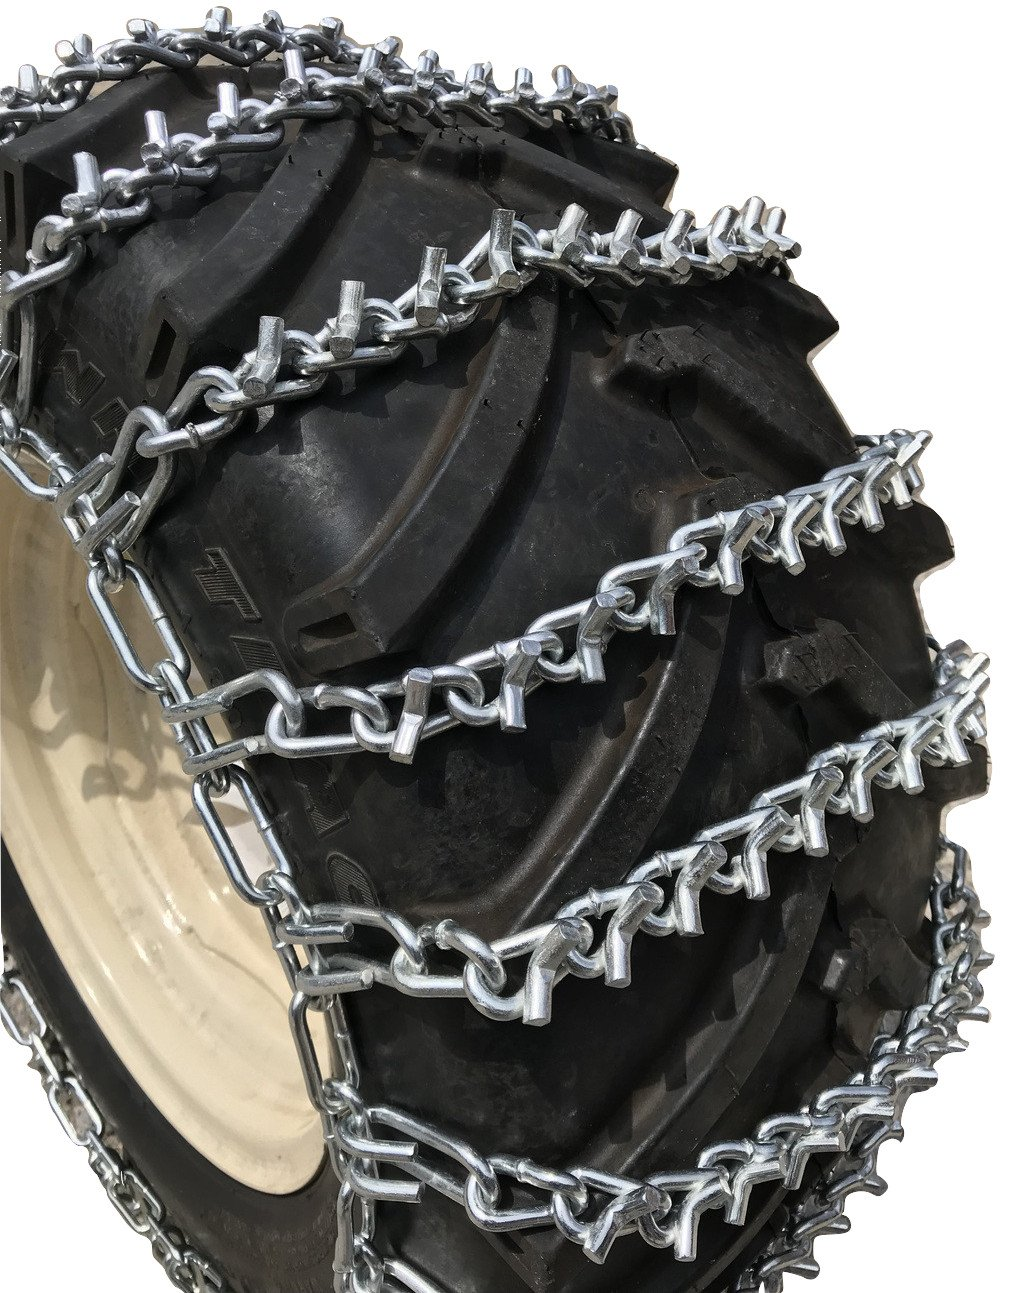 TireChain.com 4.80 x 8, 4.80 8 V-BAR Tire Chains w/Spring Tensioners by TireChain.com